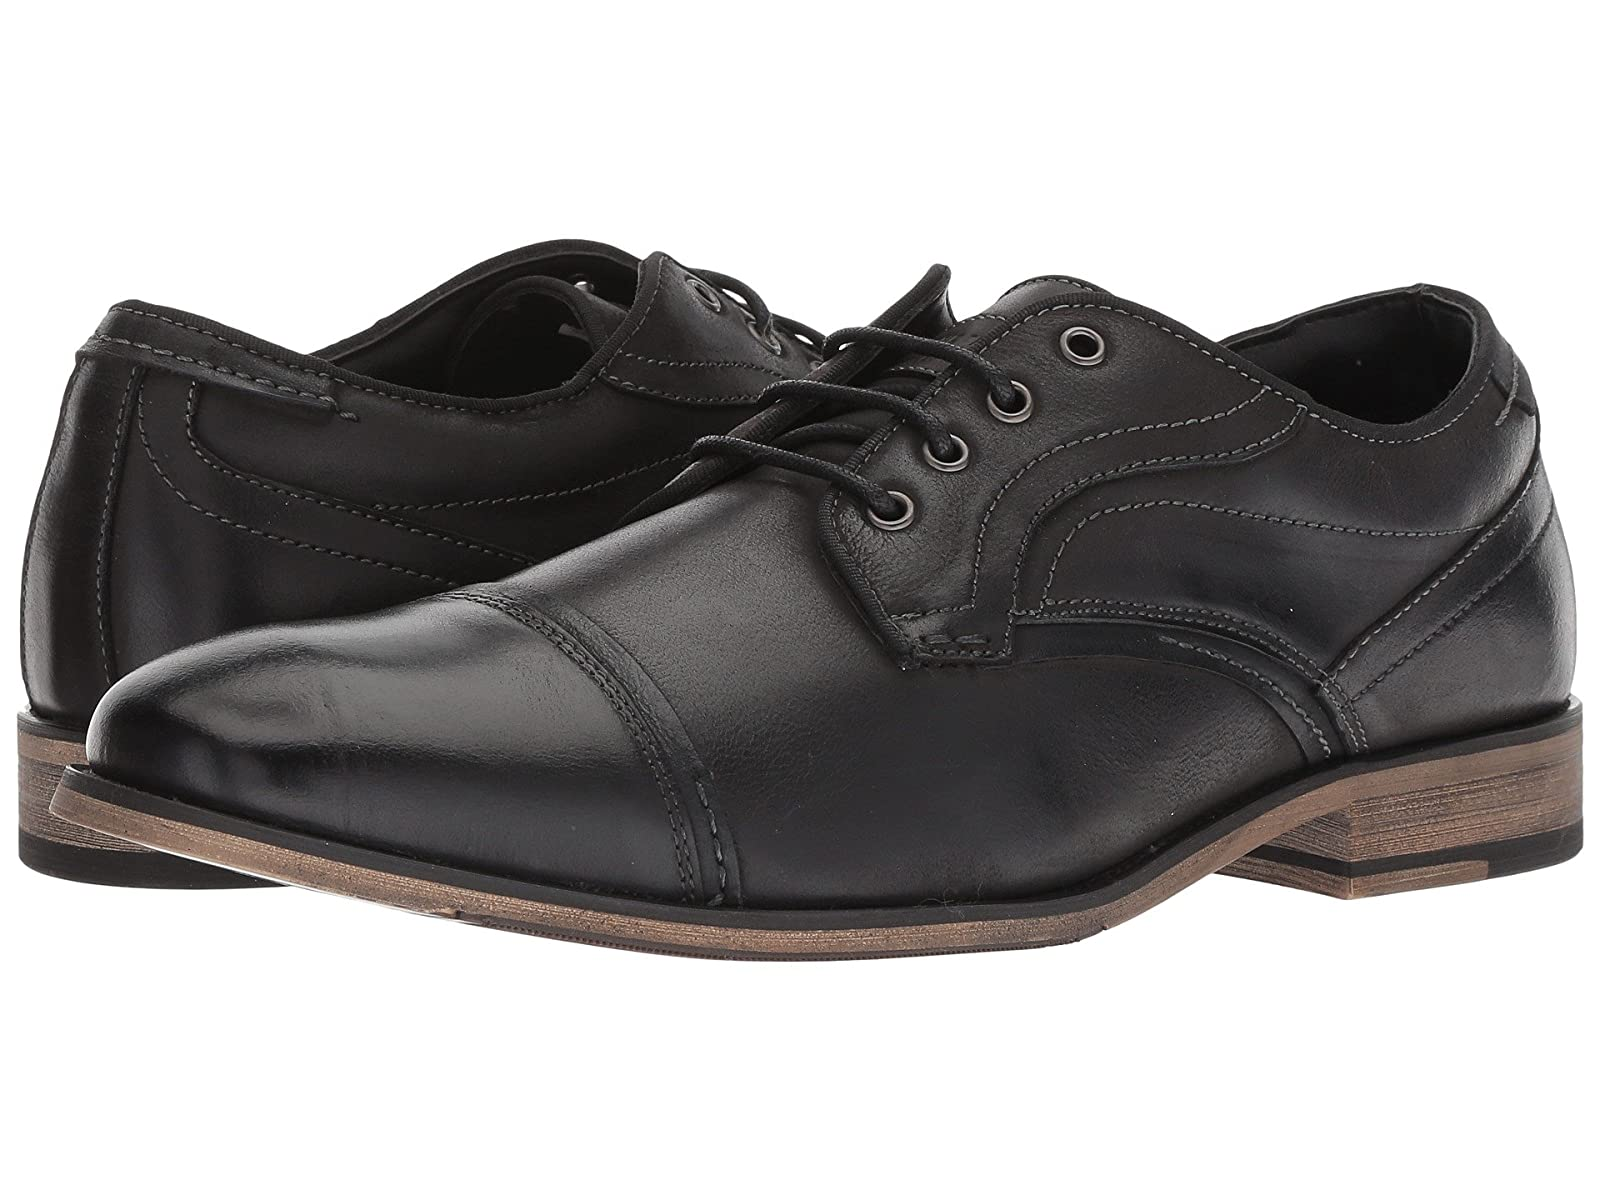 Steve Madden JentonAtmospheric grades have affordable shoes